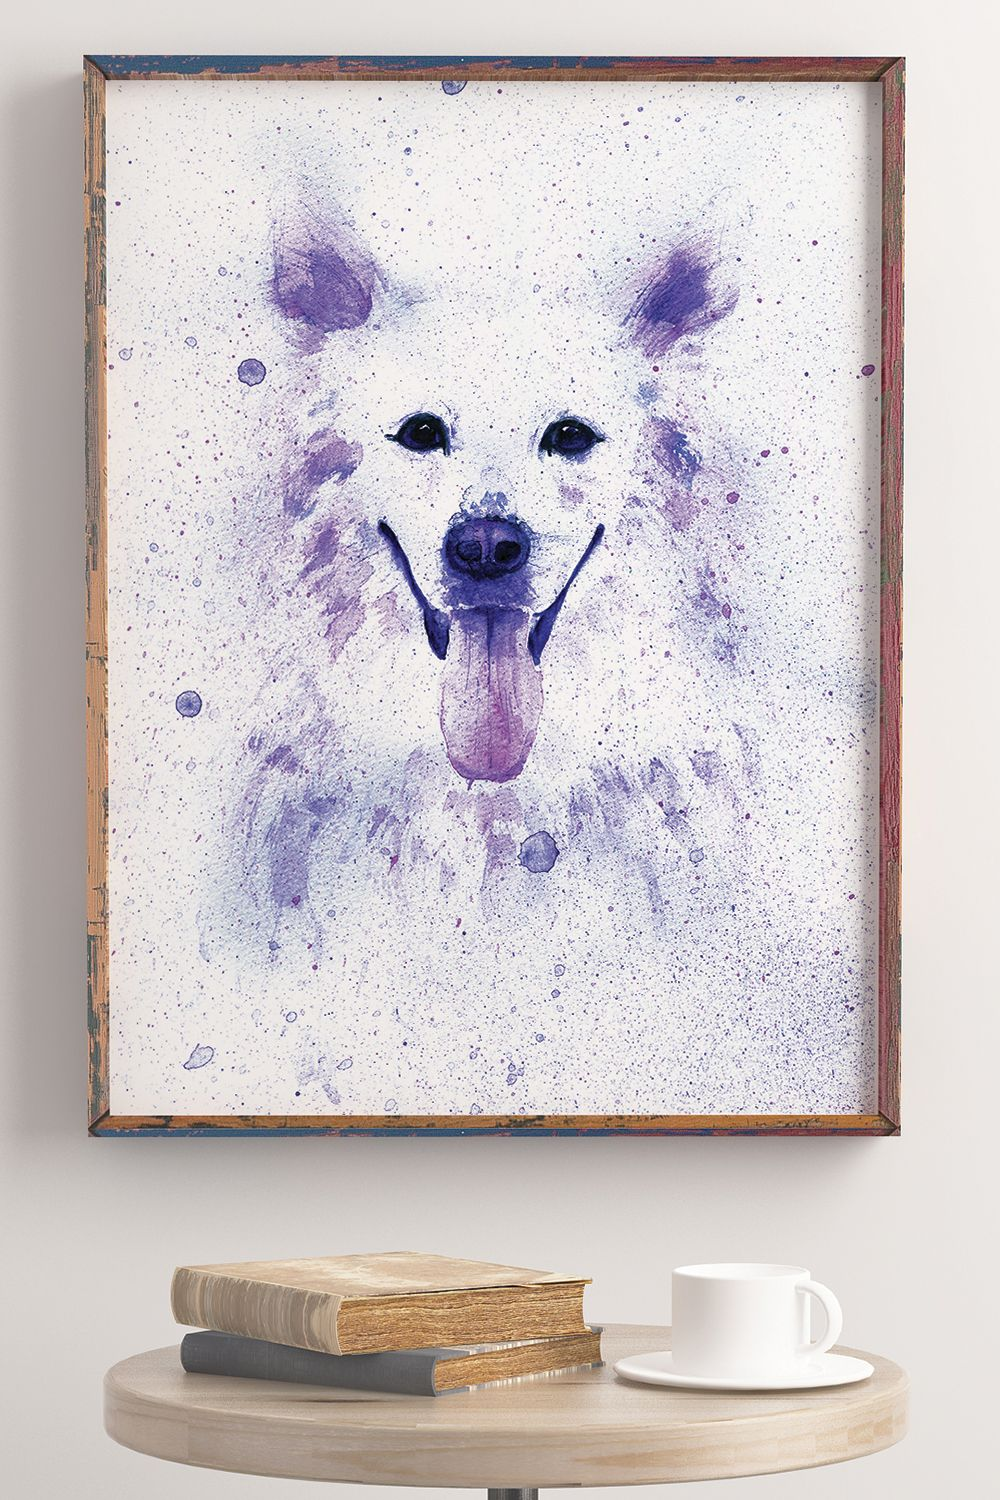 Watercolor Dog Wall Art For Nursery Kids Room Dog Wall Decor